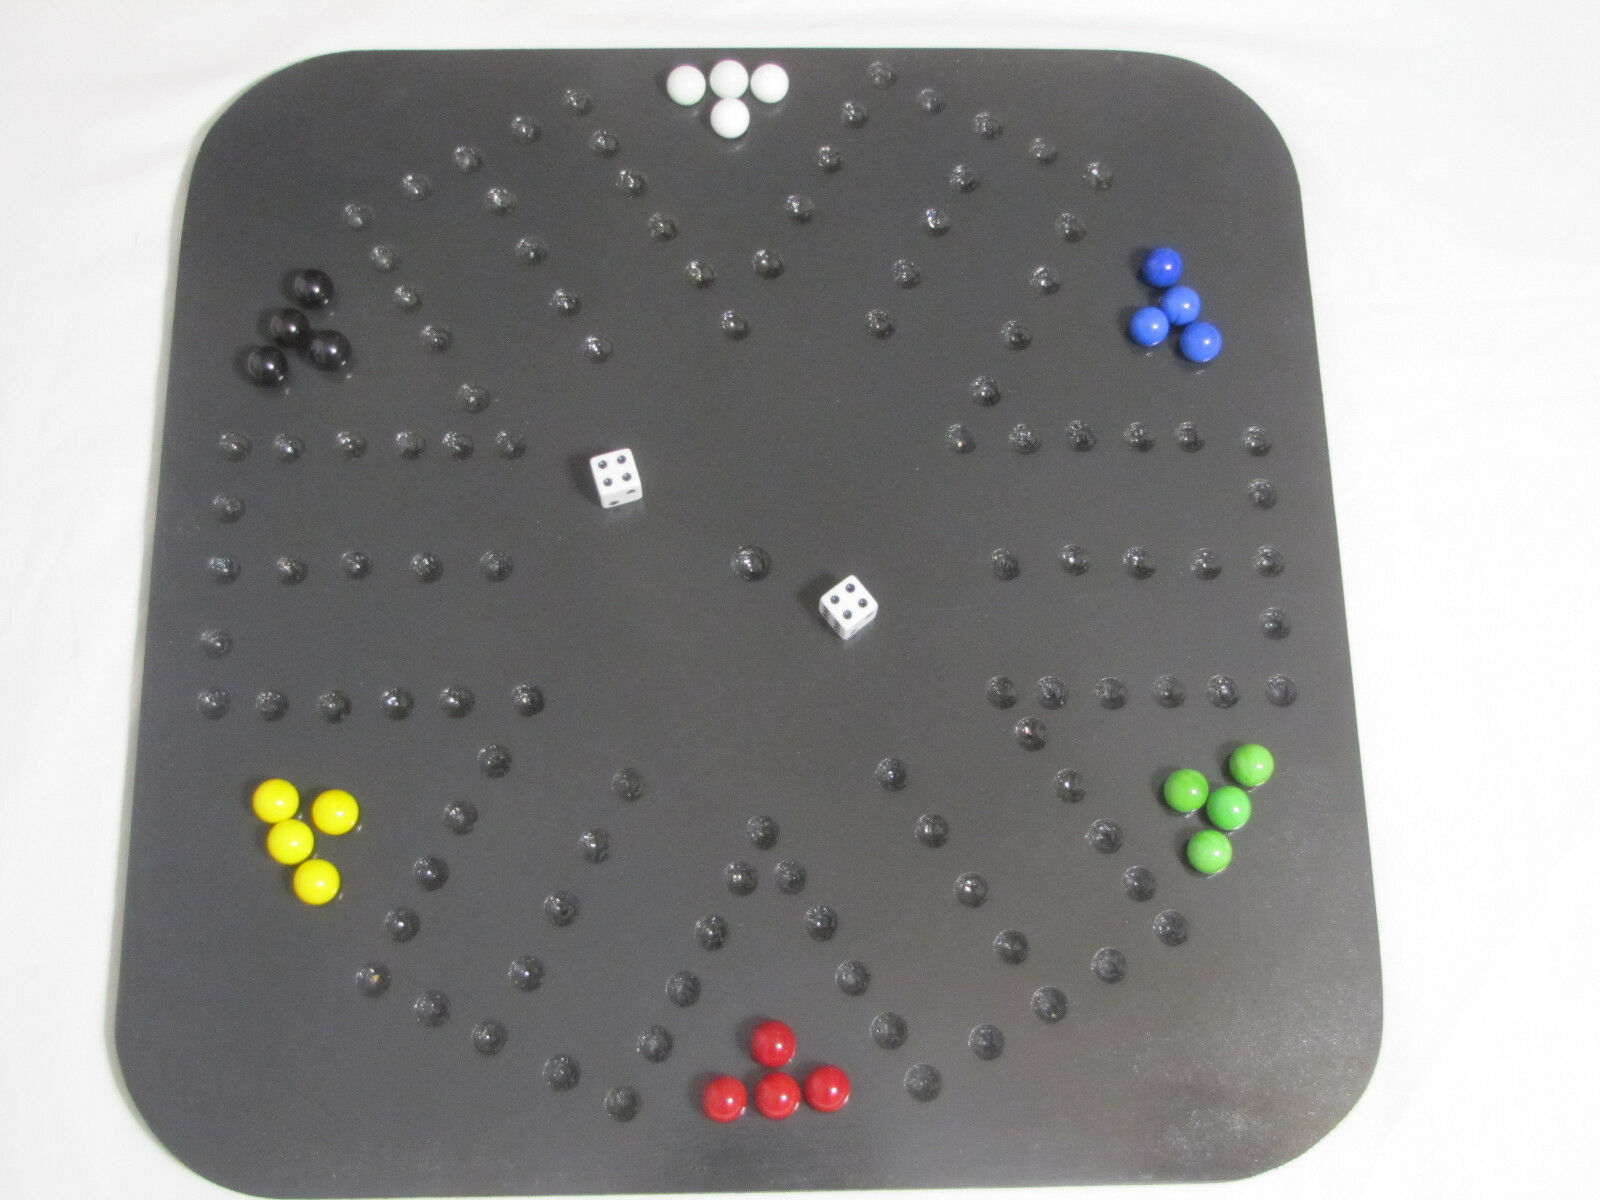 AGGRAVATION GAME / WAHOO – SIX PLAYER SQUARE WOODEN GAME BOARD DARK EBONY